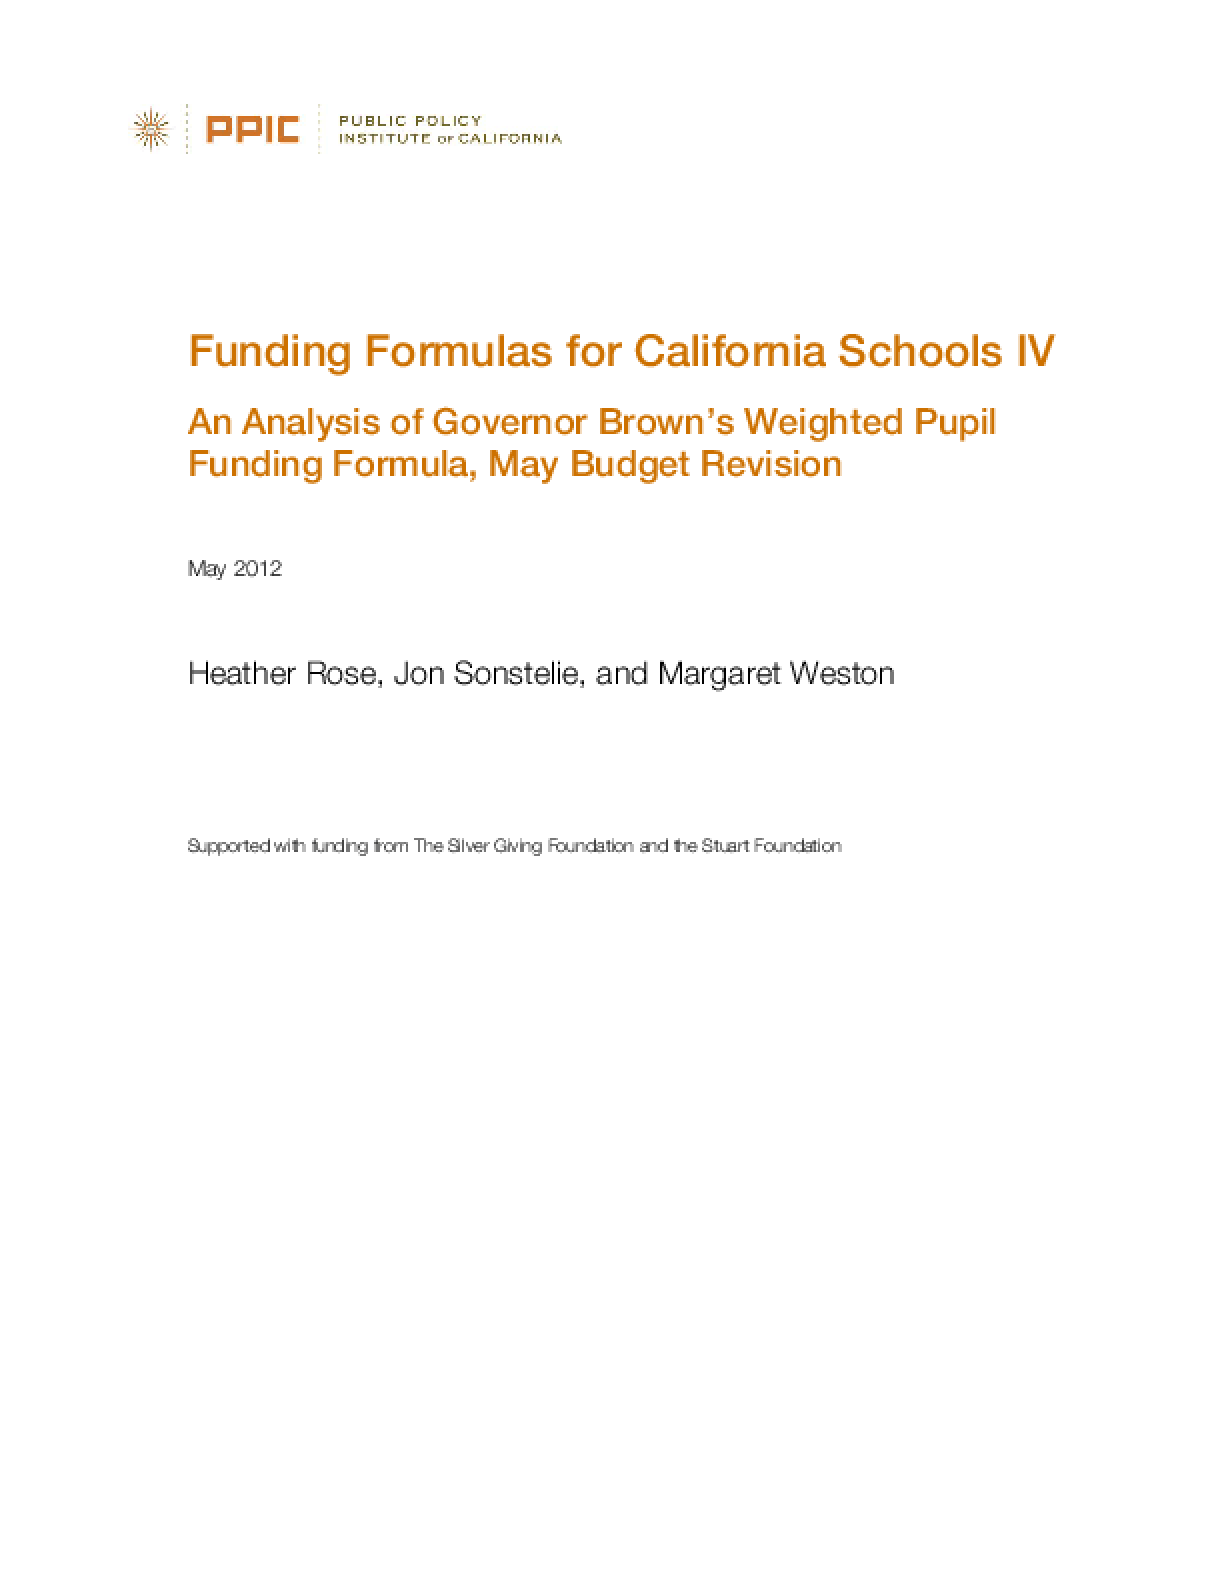 Funding Formulas for California Schools IV: An Analysis of Governor Brown's Weighted Pupil Funding Formula, May Budget Revision